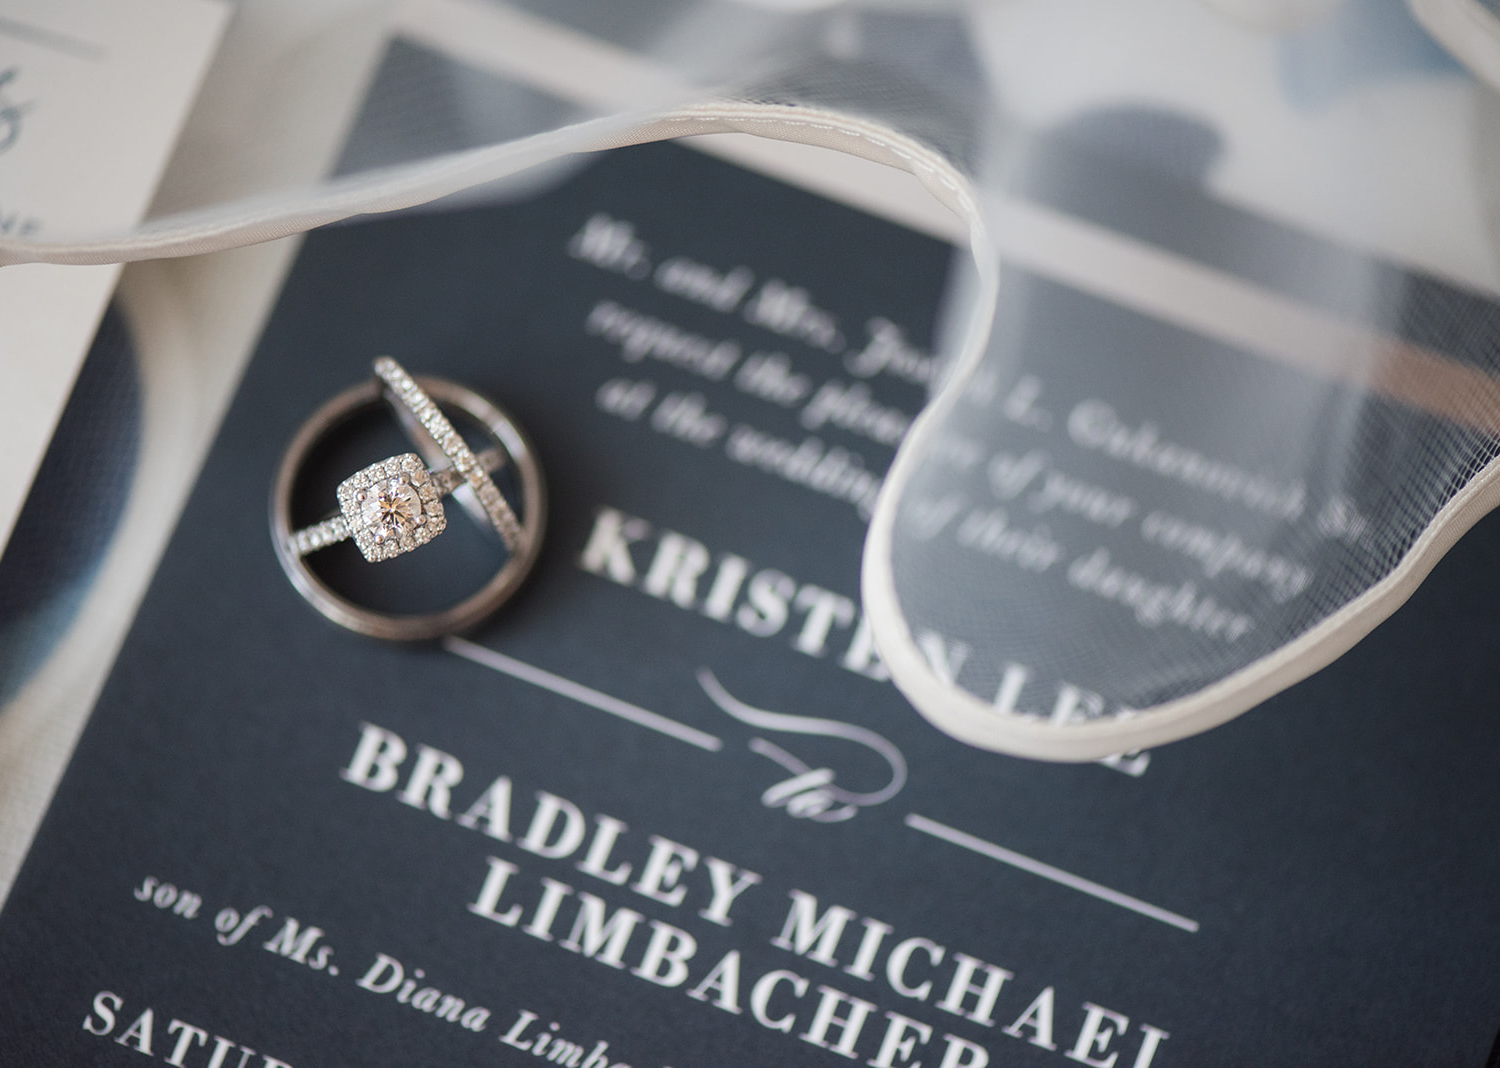 wedding ring photographed with the wedding invites